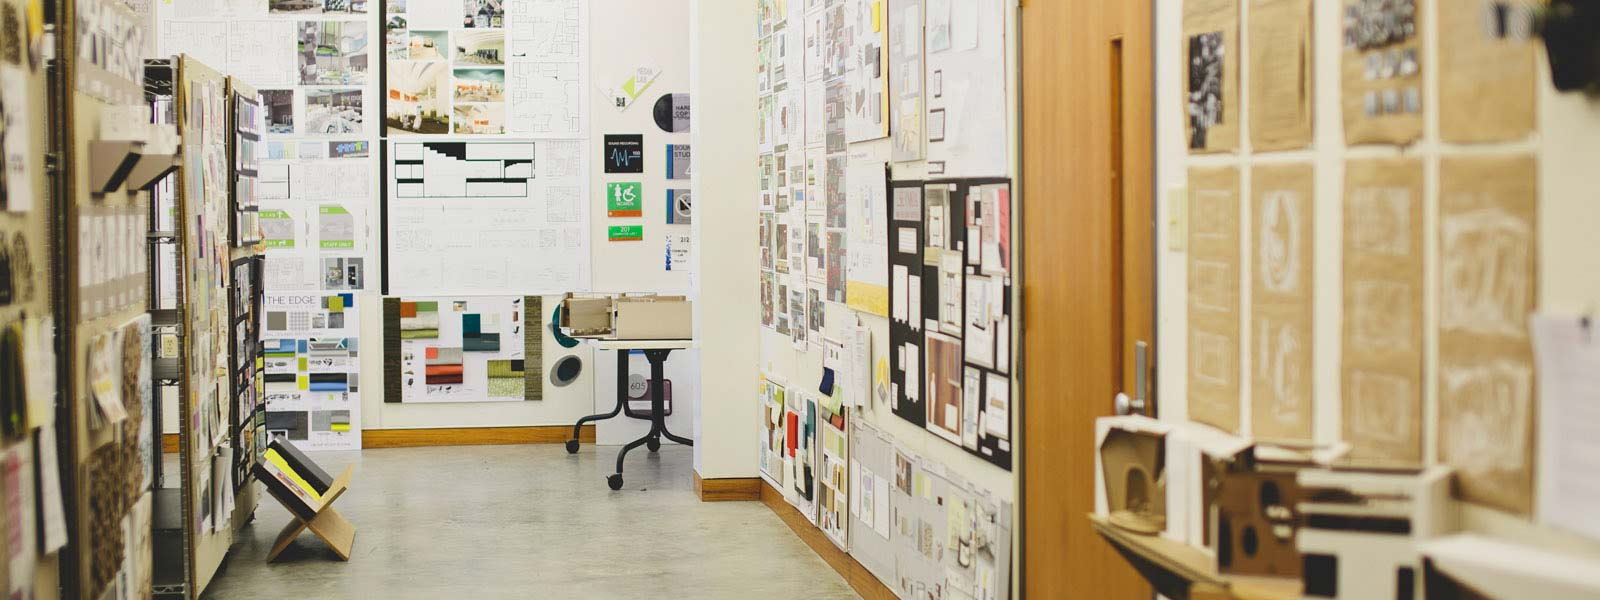 Interior design scholarships college of art design - Scholarships for interior design students ...